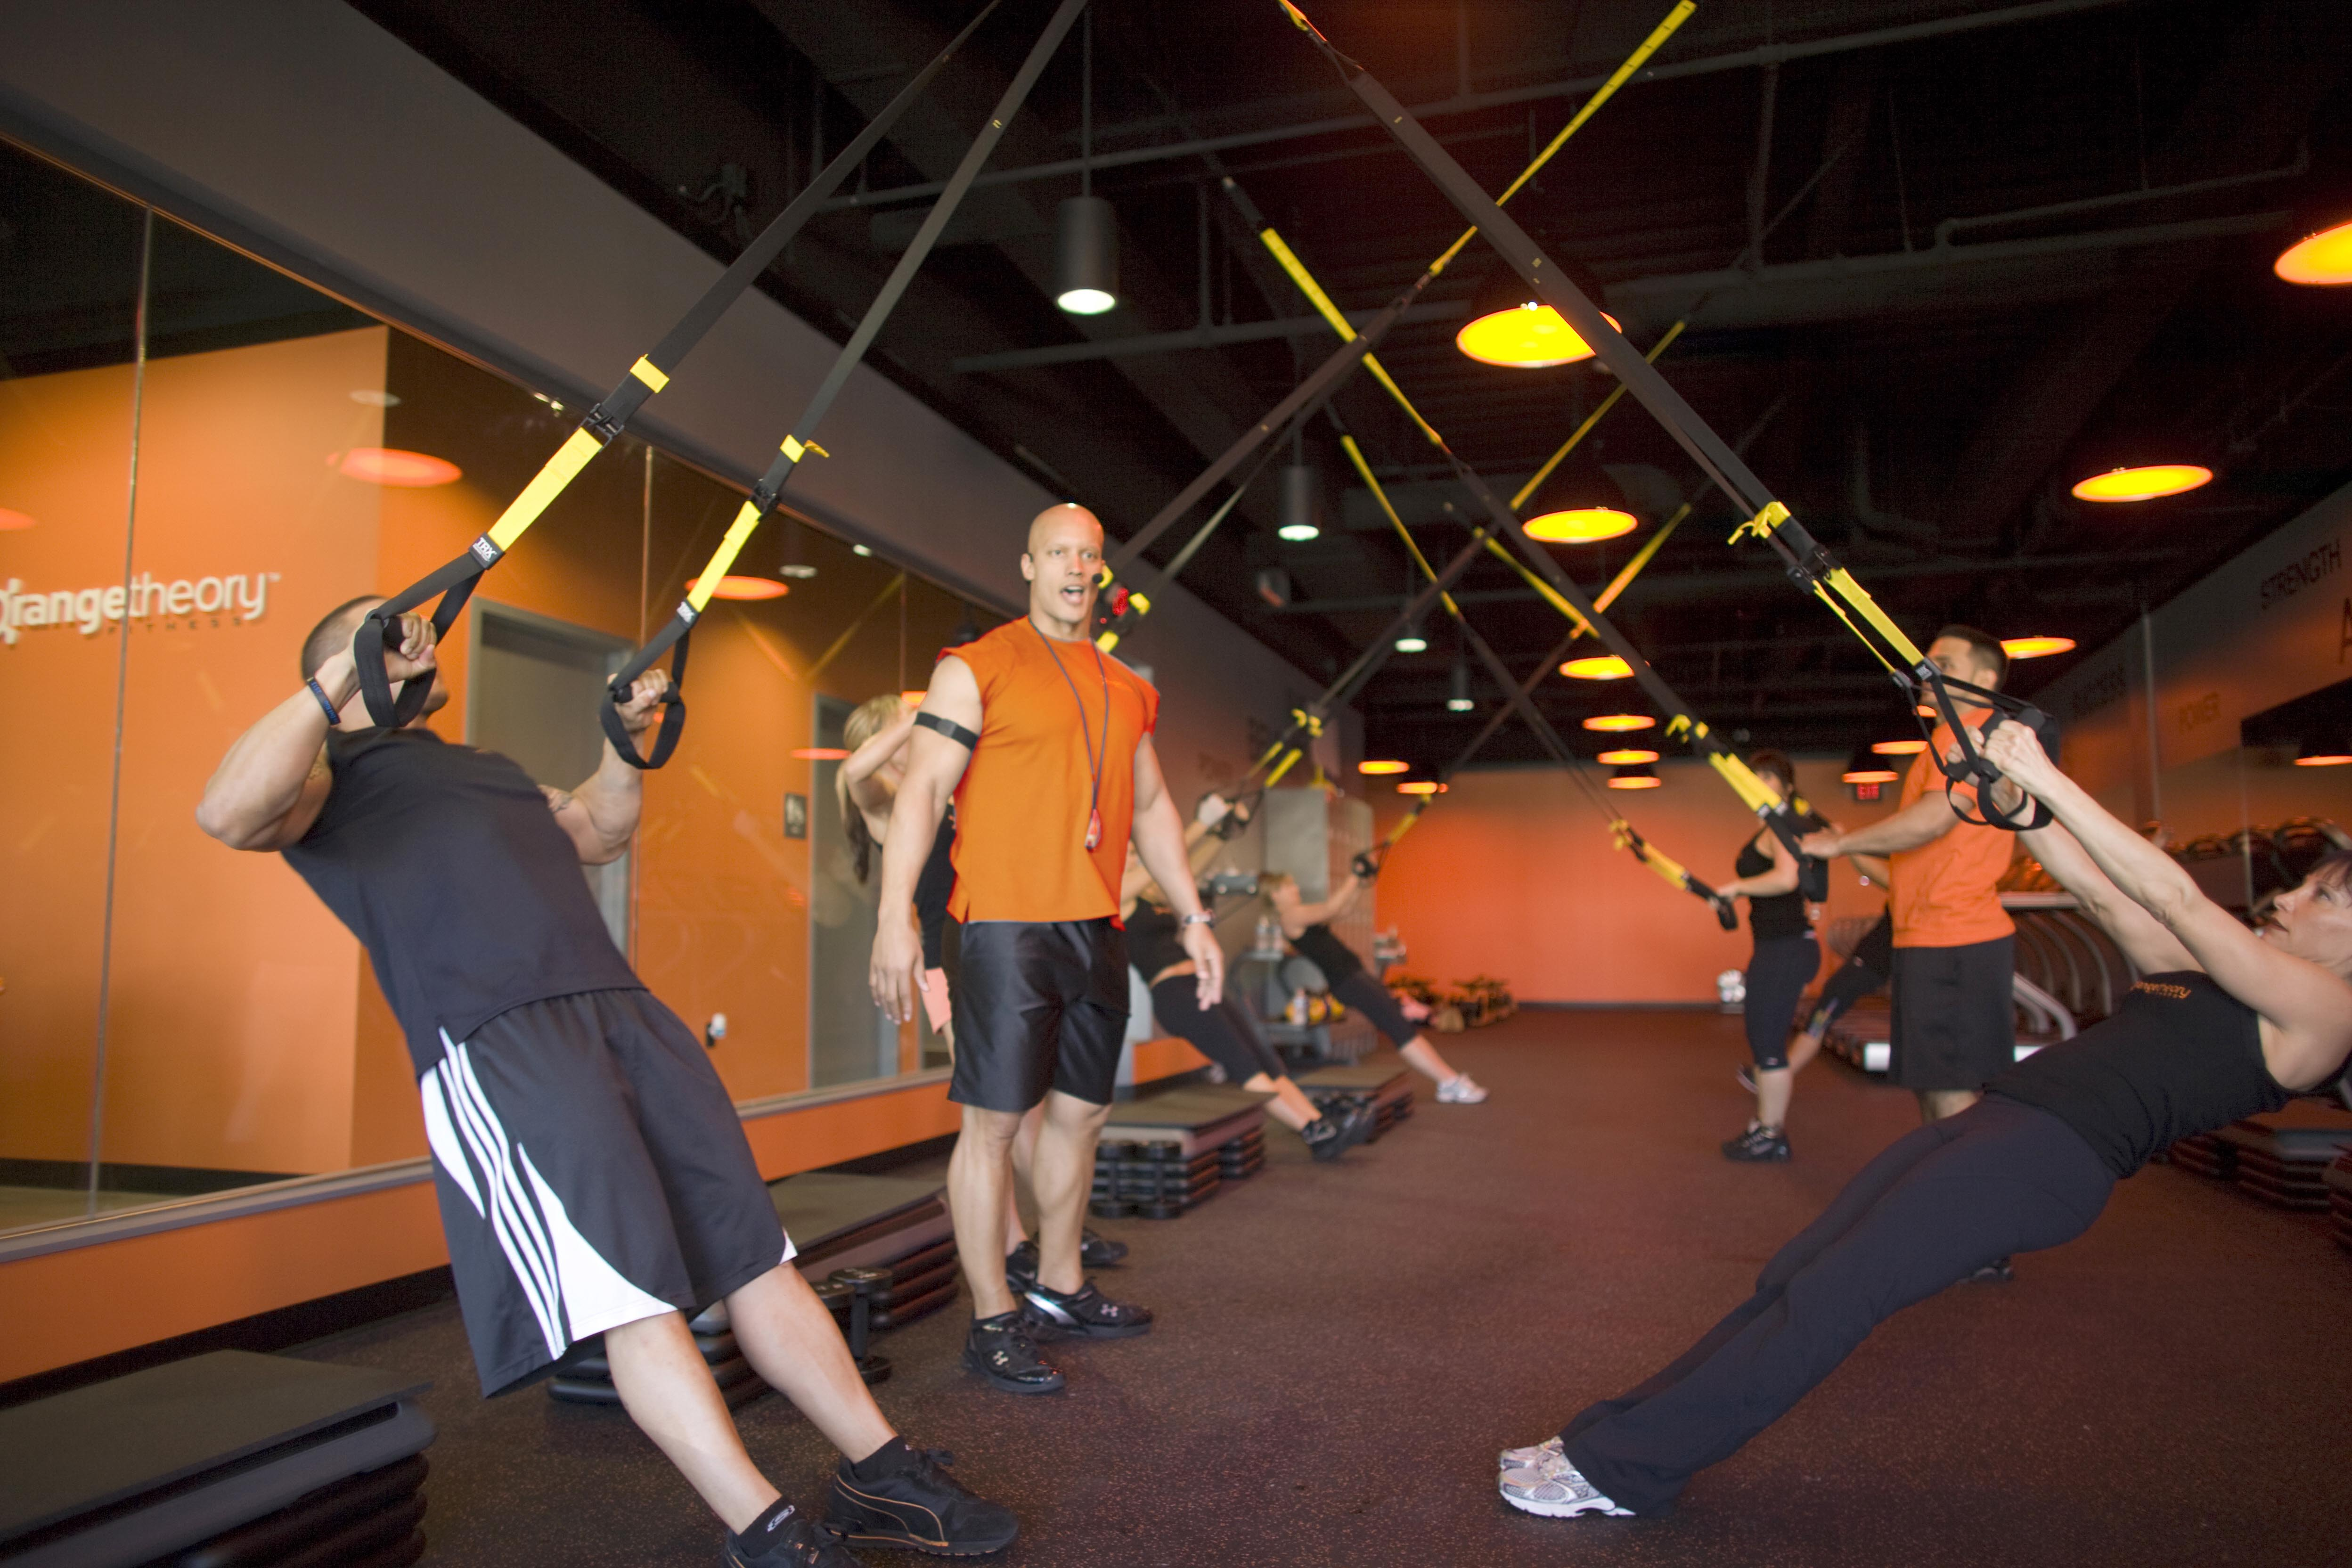 Orangetheory Fitness - Best 1-hour workout in the country, as seen in the New York Times.